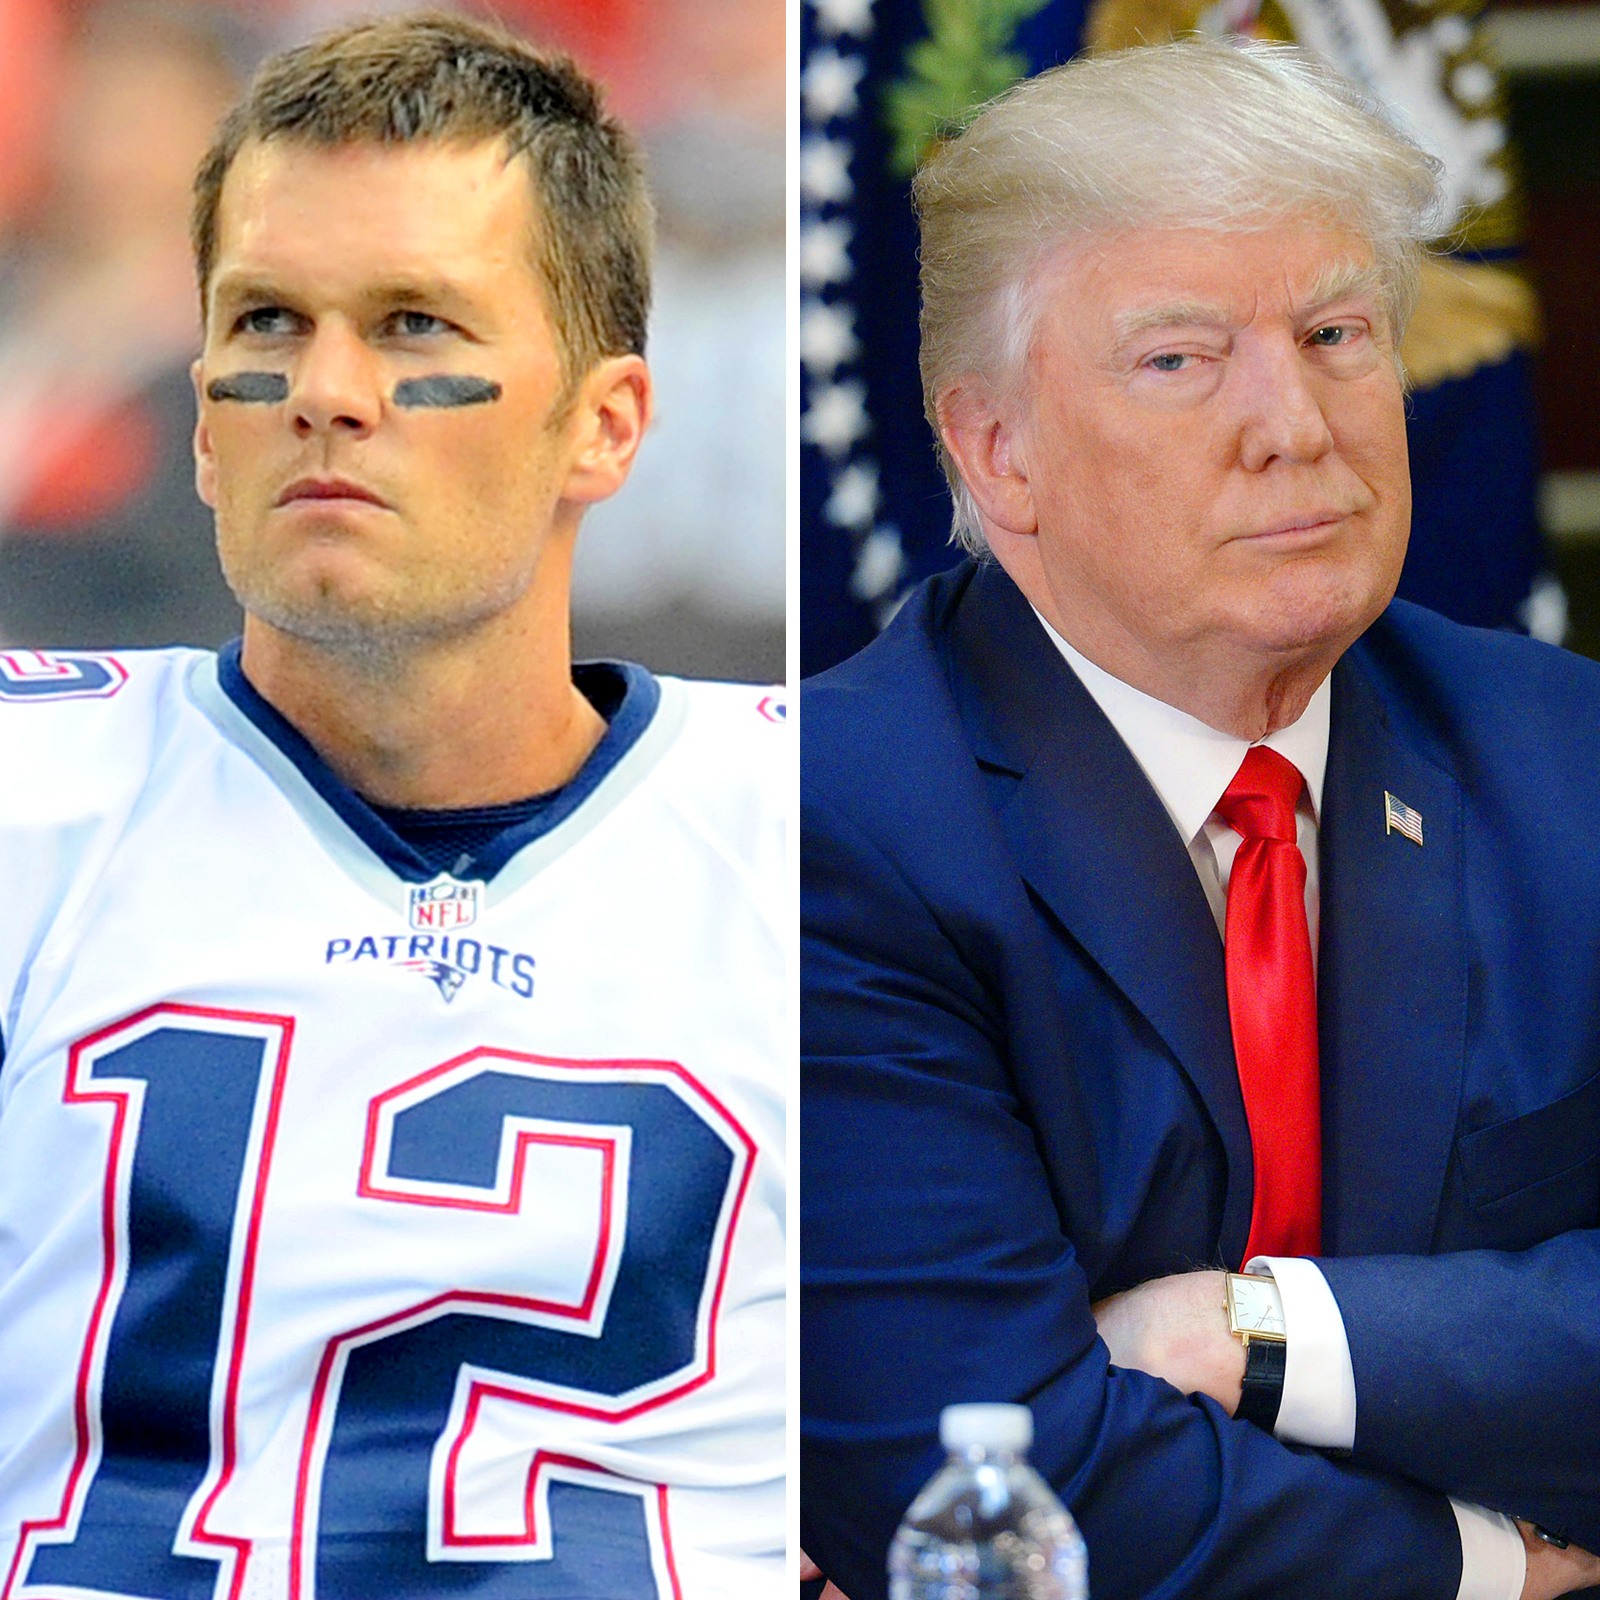 Tom Brady y Donald Trump